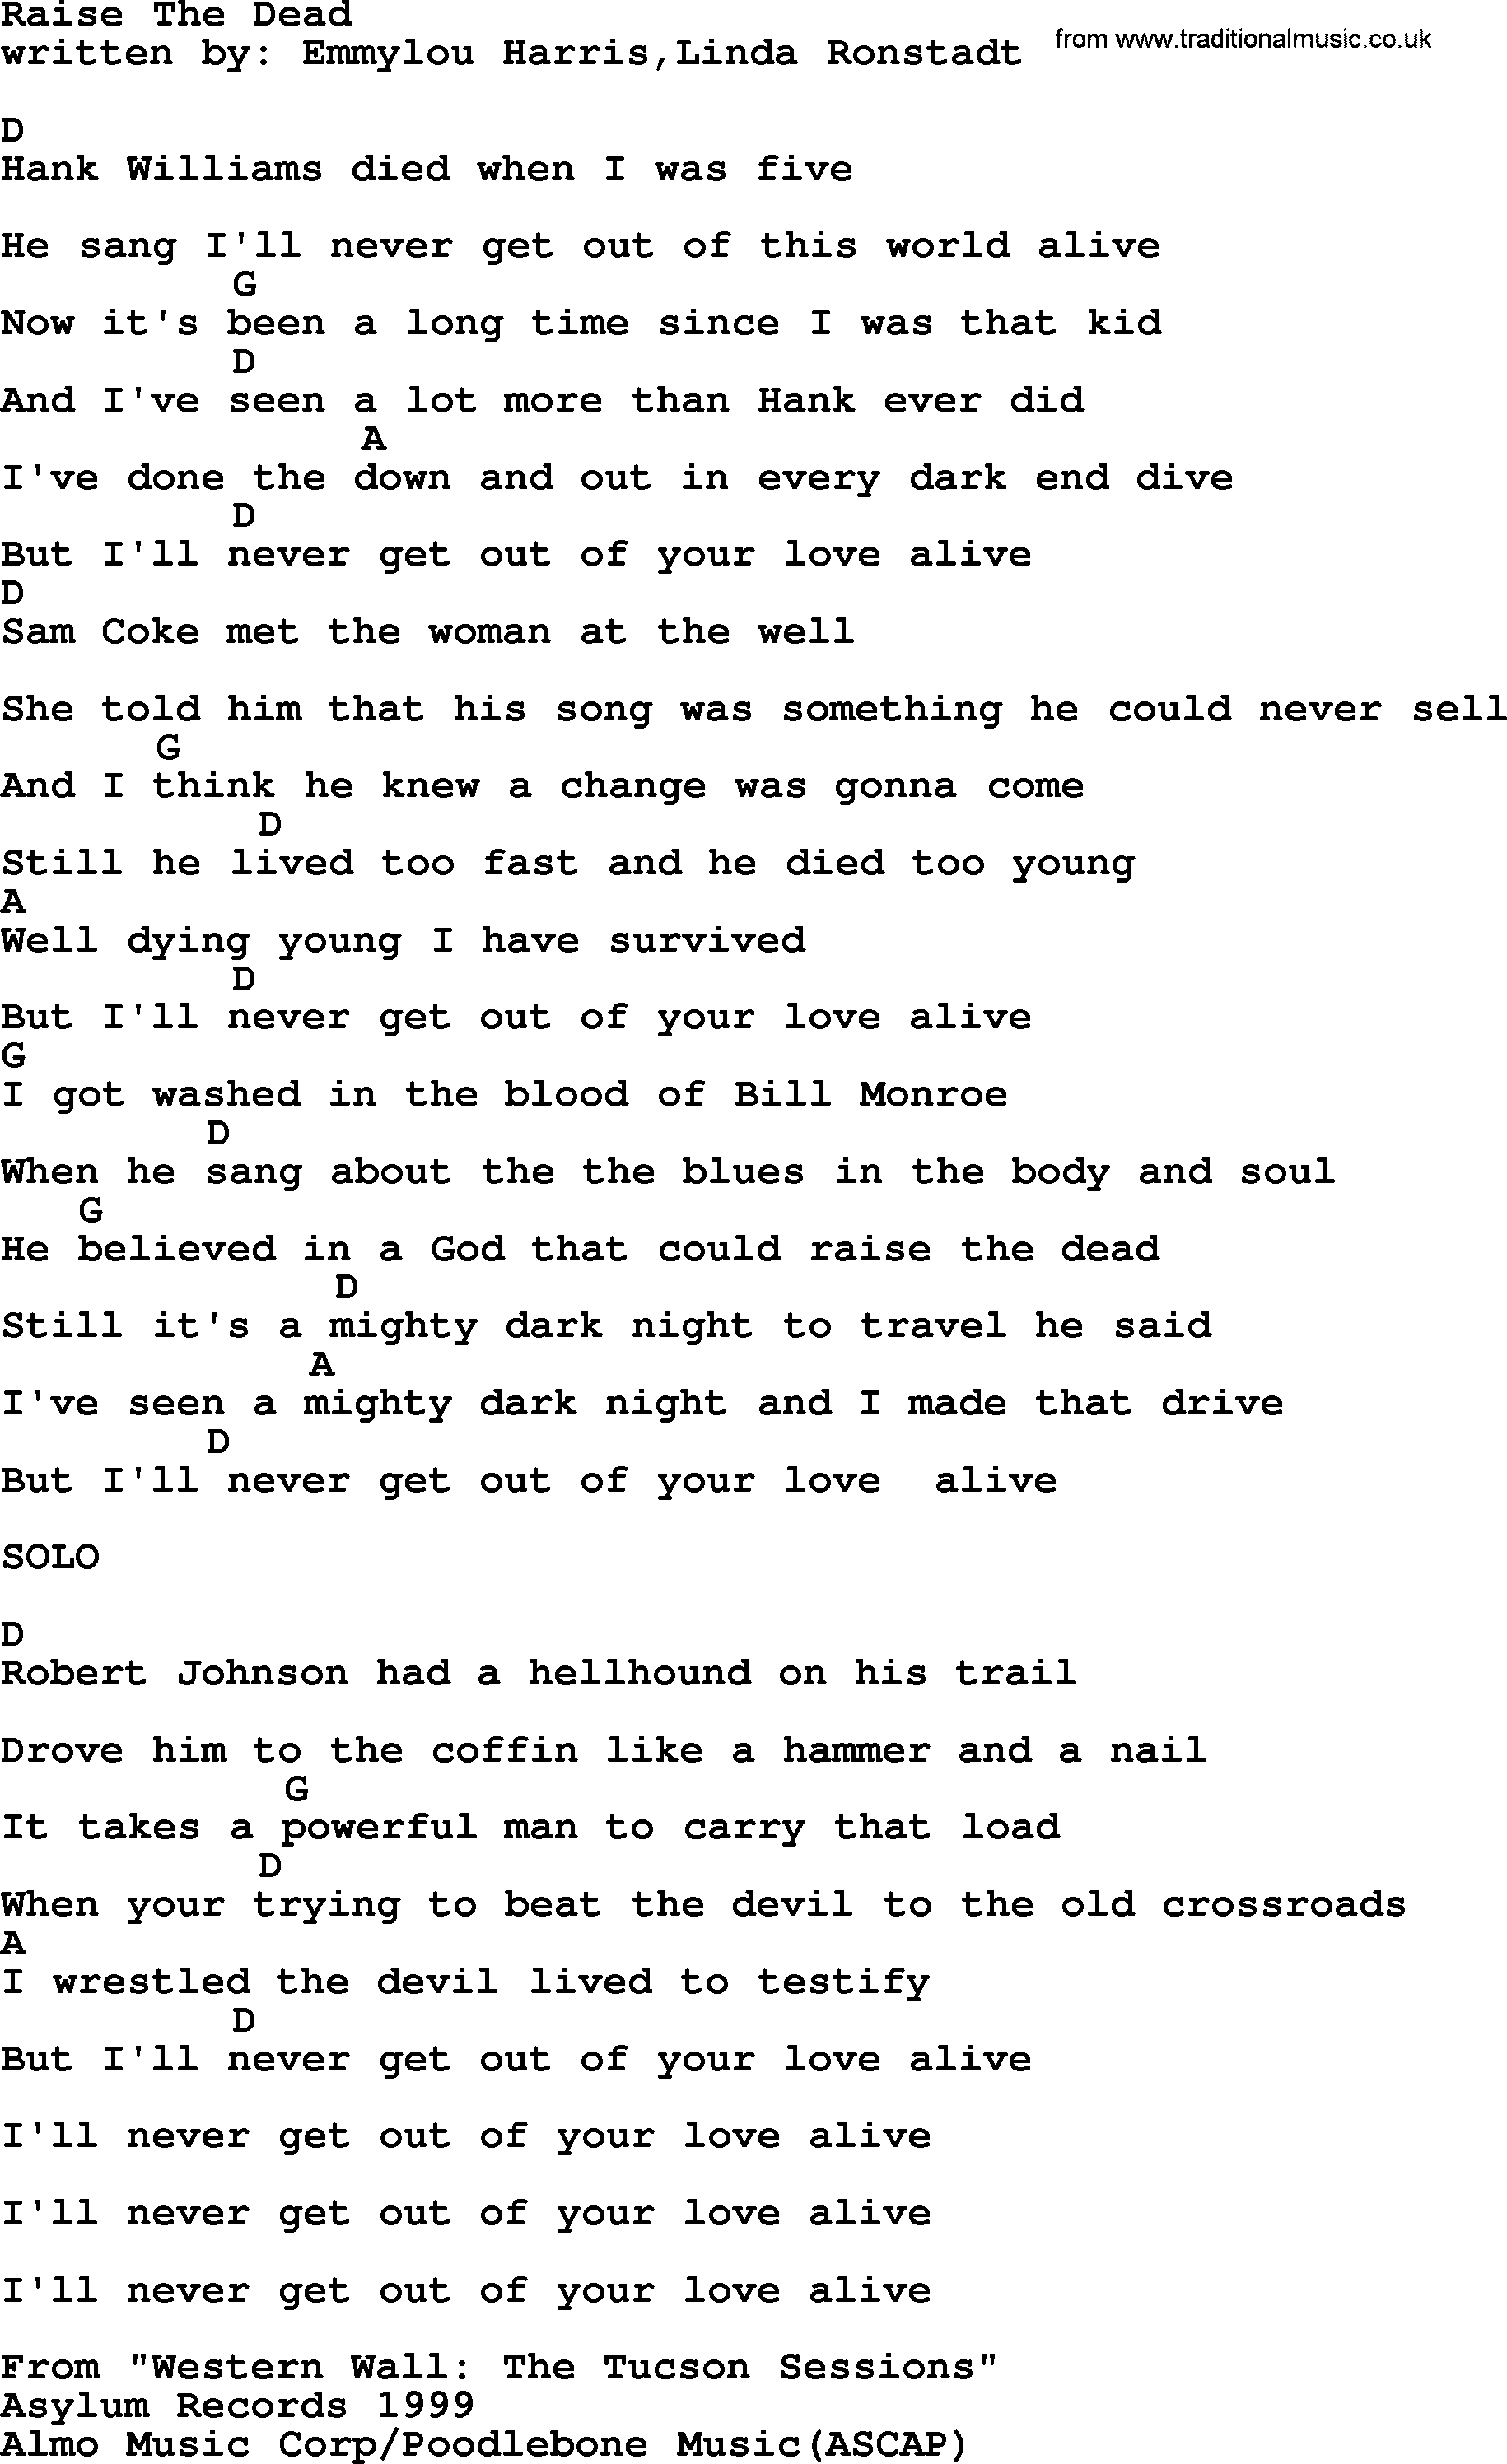 Emmylou Harris Song Raise The Dead Lyrics And Chords